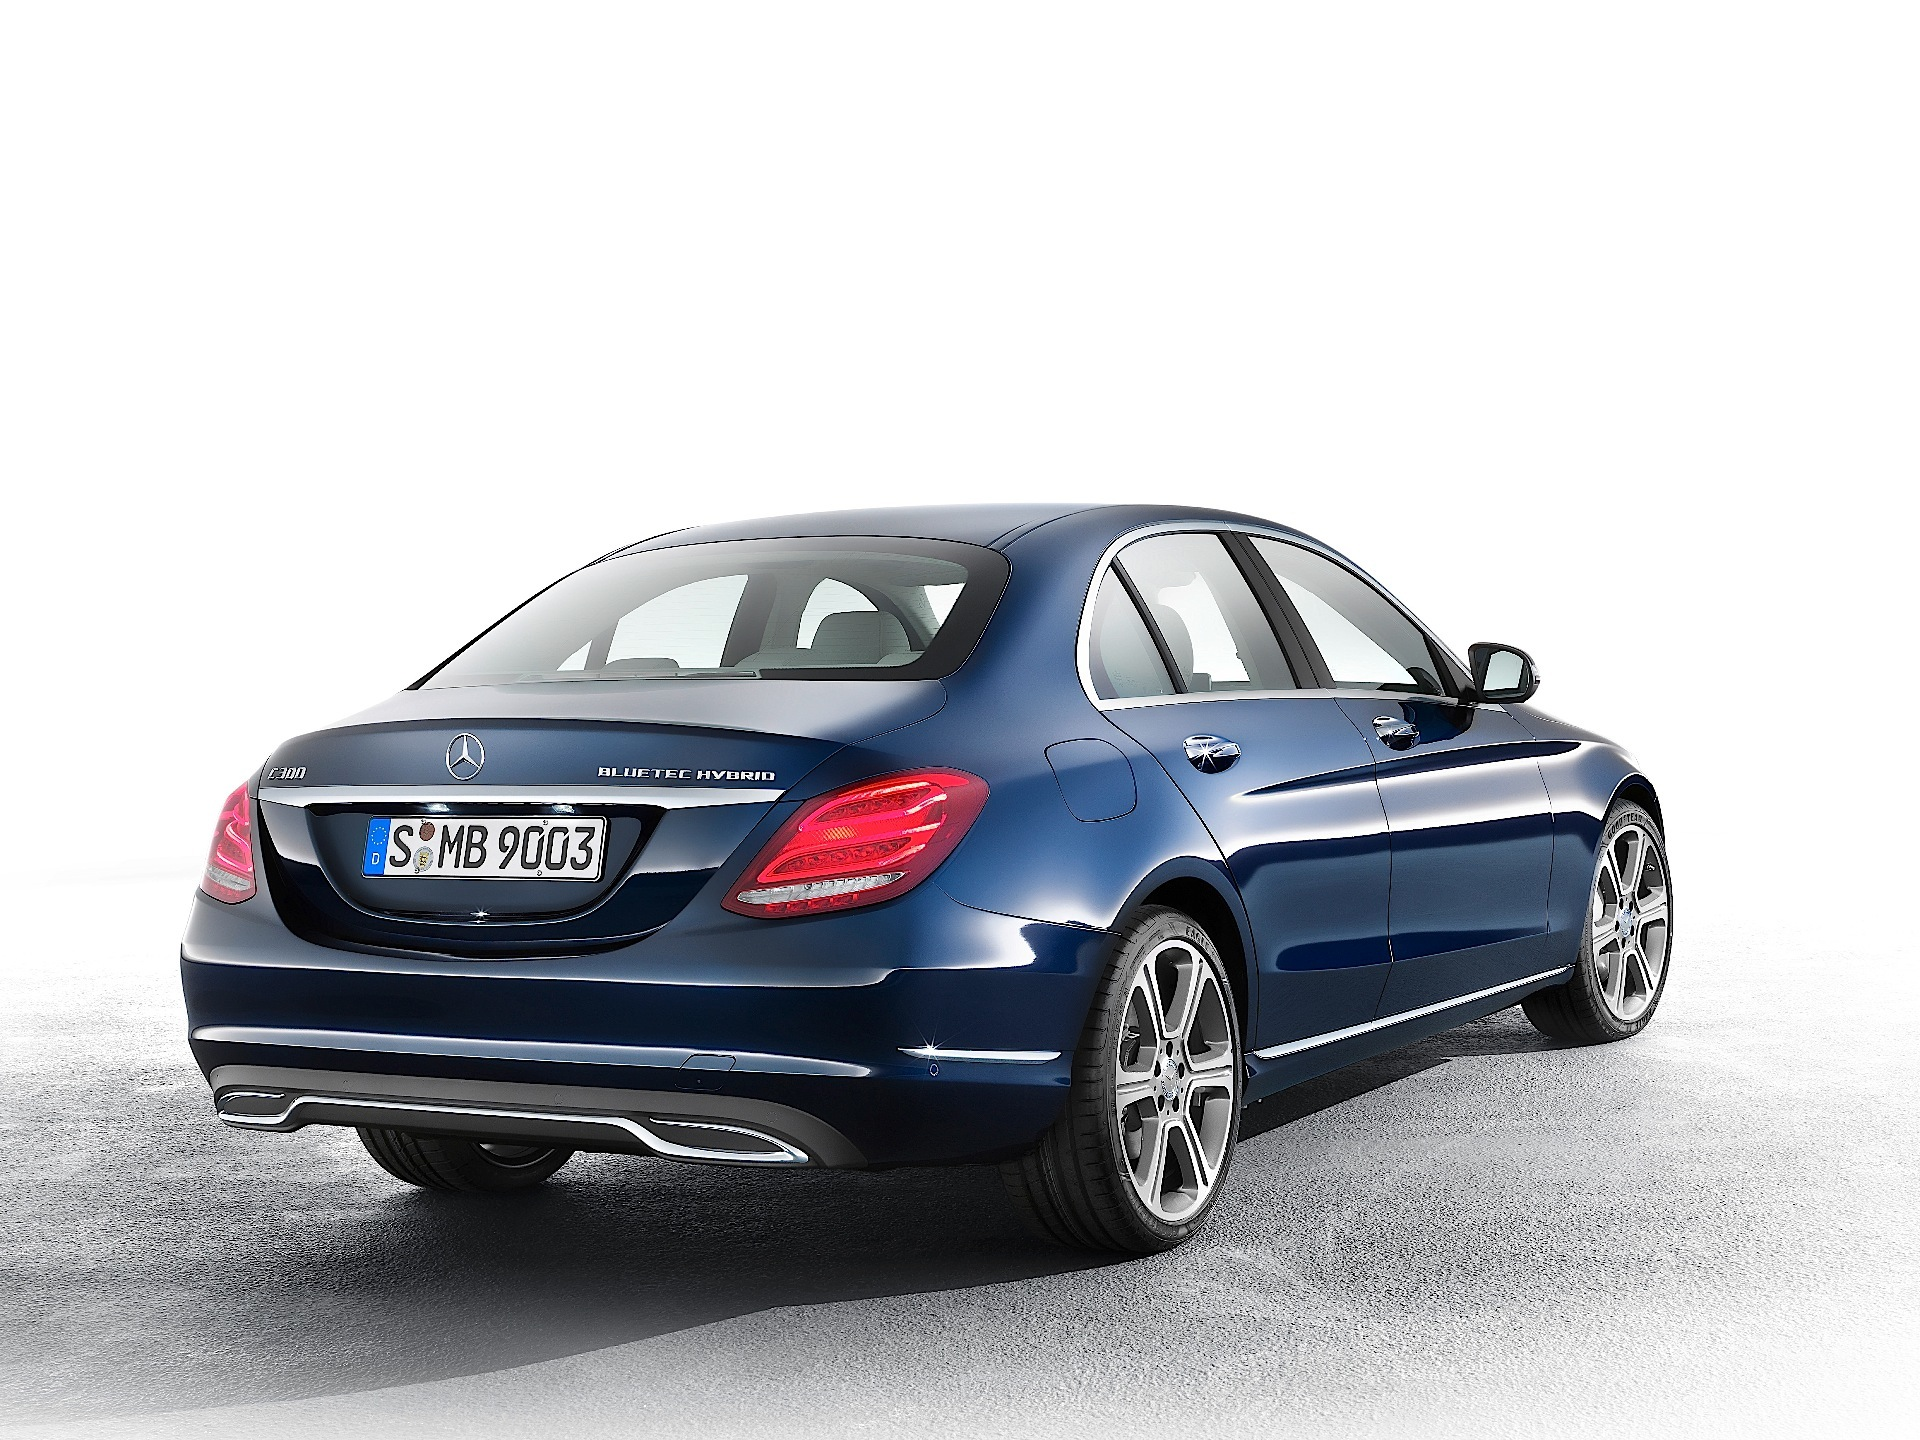 Mercedes benz c class w205 specs 2014 2015 2016 for Mercedes benz c class horsepower